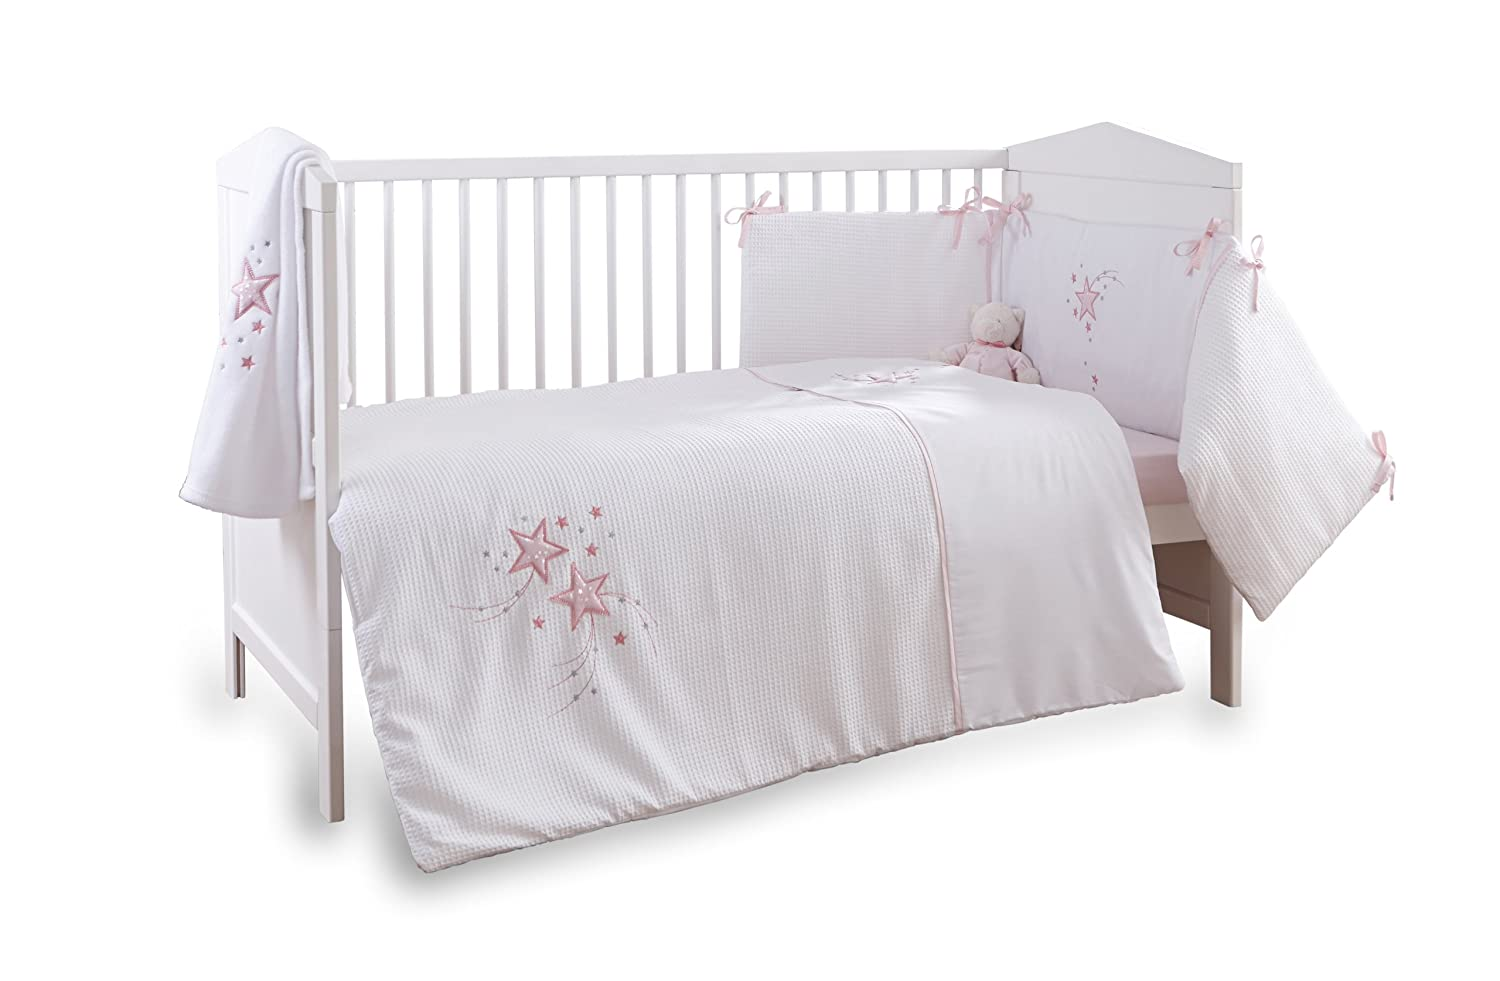 Clair de Lune 3-Piece Pink Stardust Cot/Cot Bed Quilt, Bumper and Fitted Sheet Bedding Set CL4815P